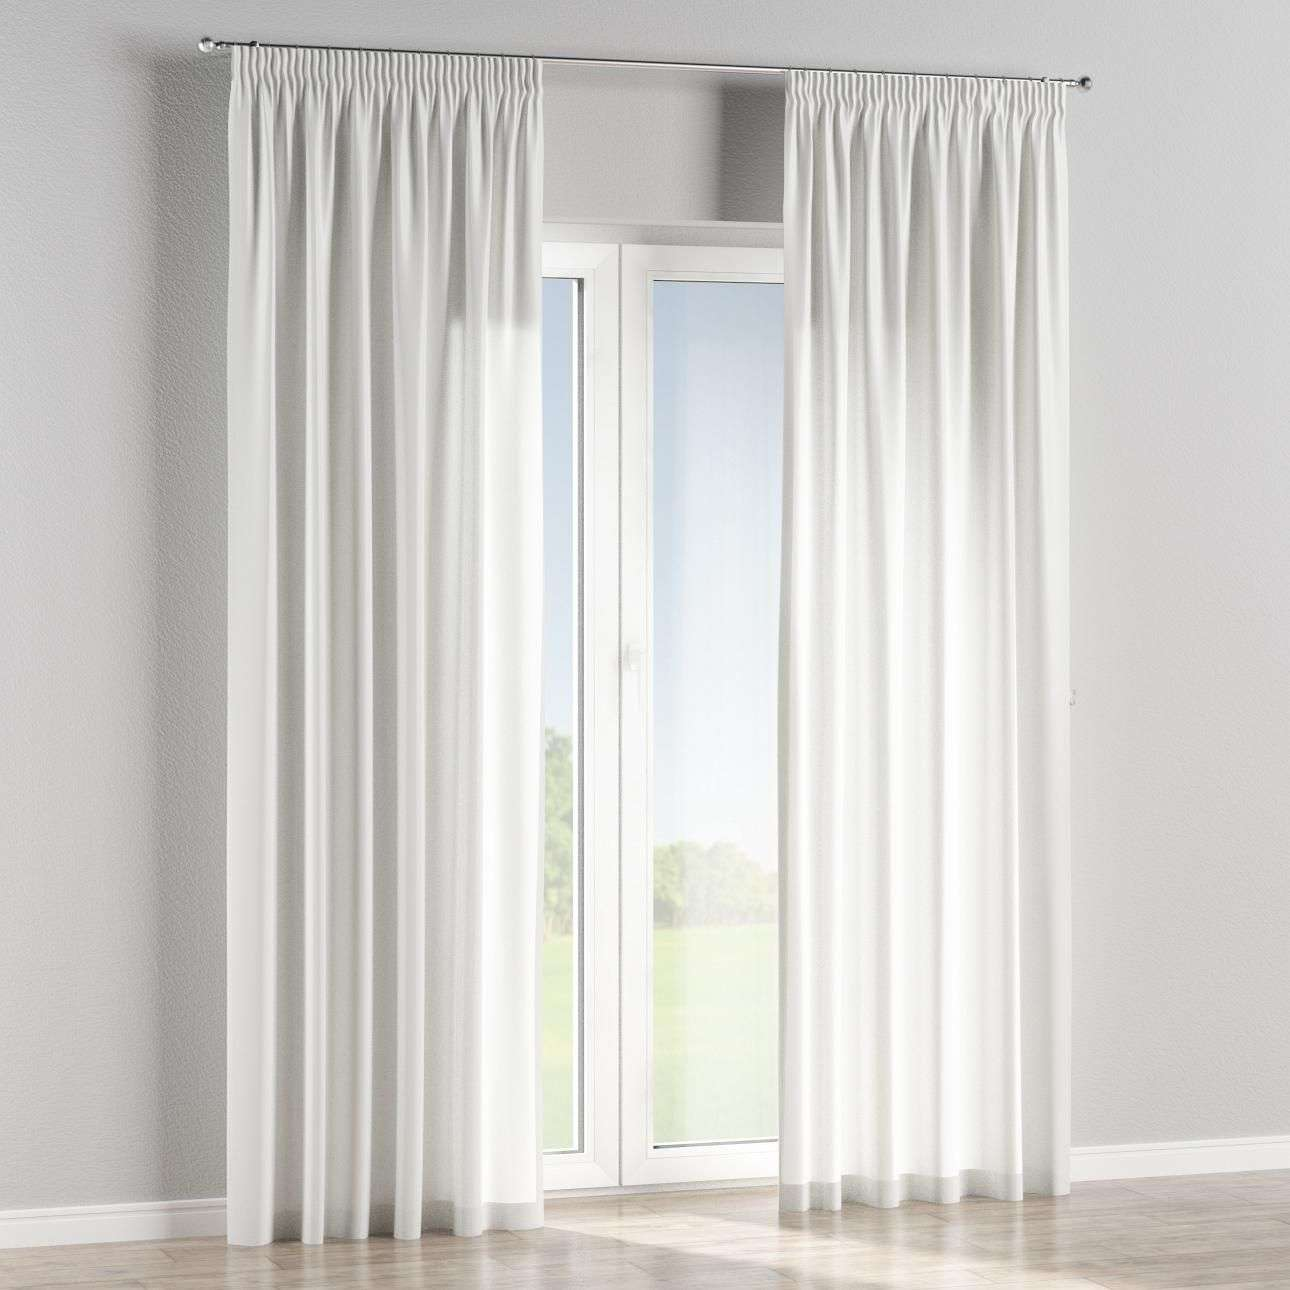 Pencil pleat curtains in collection SALE, fabric: 136-25